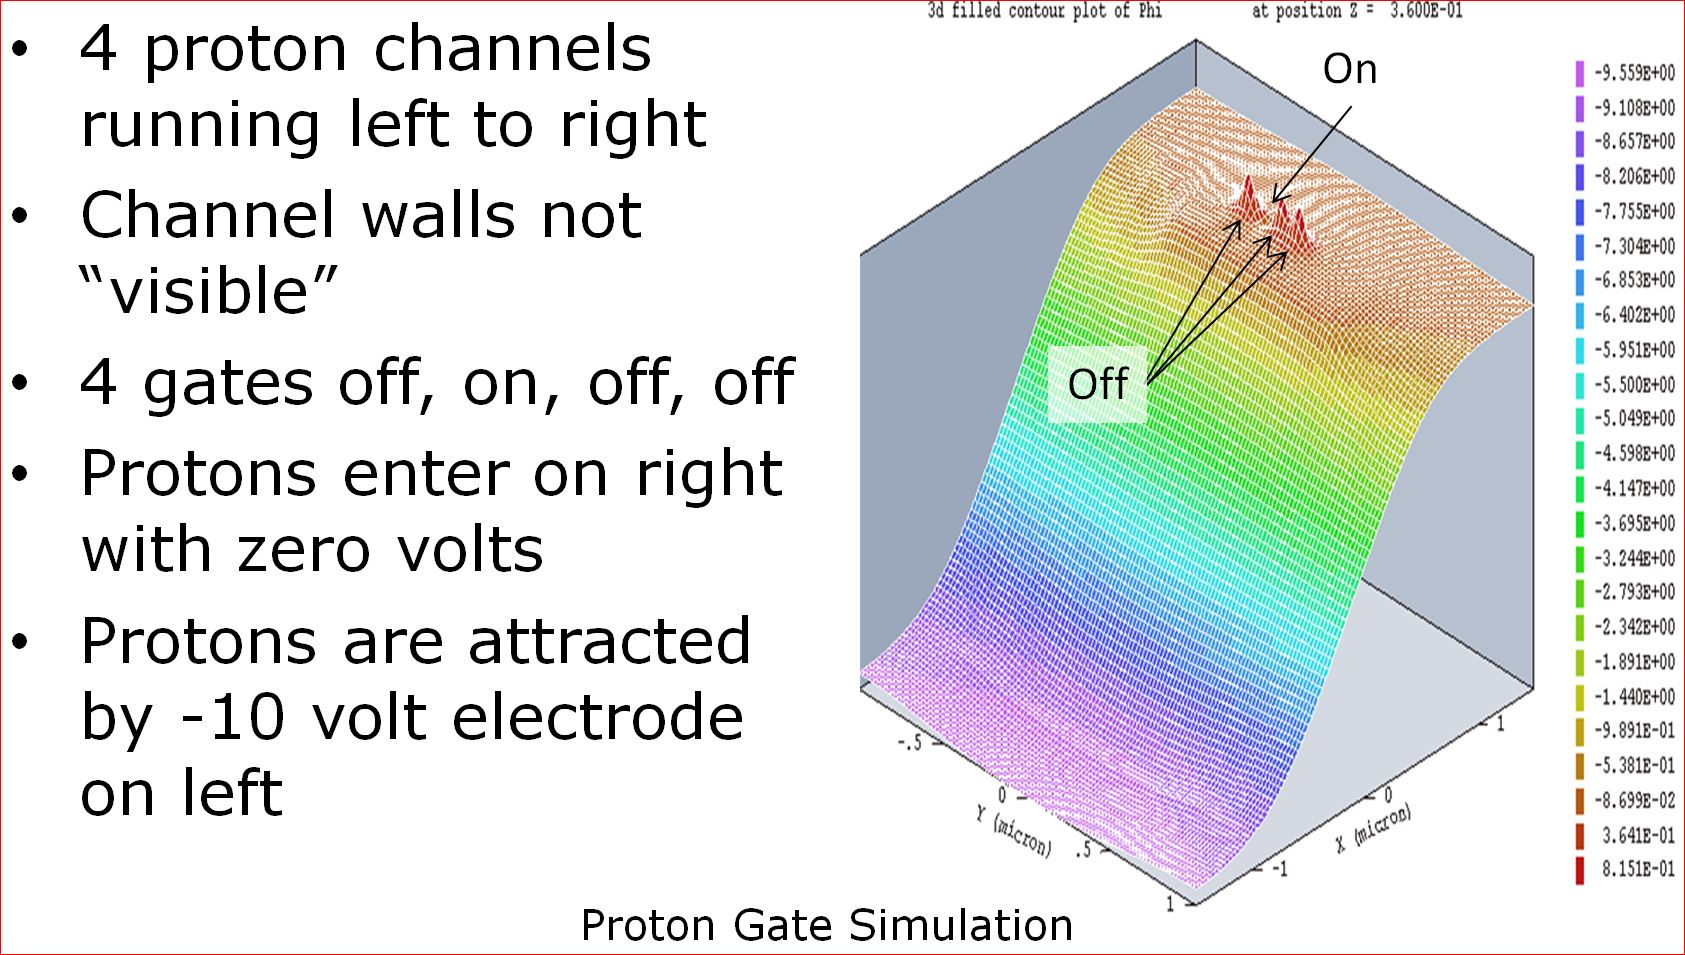 proton gate simulation.JPG